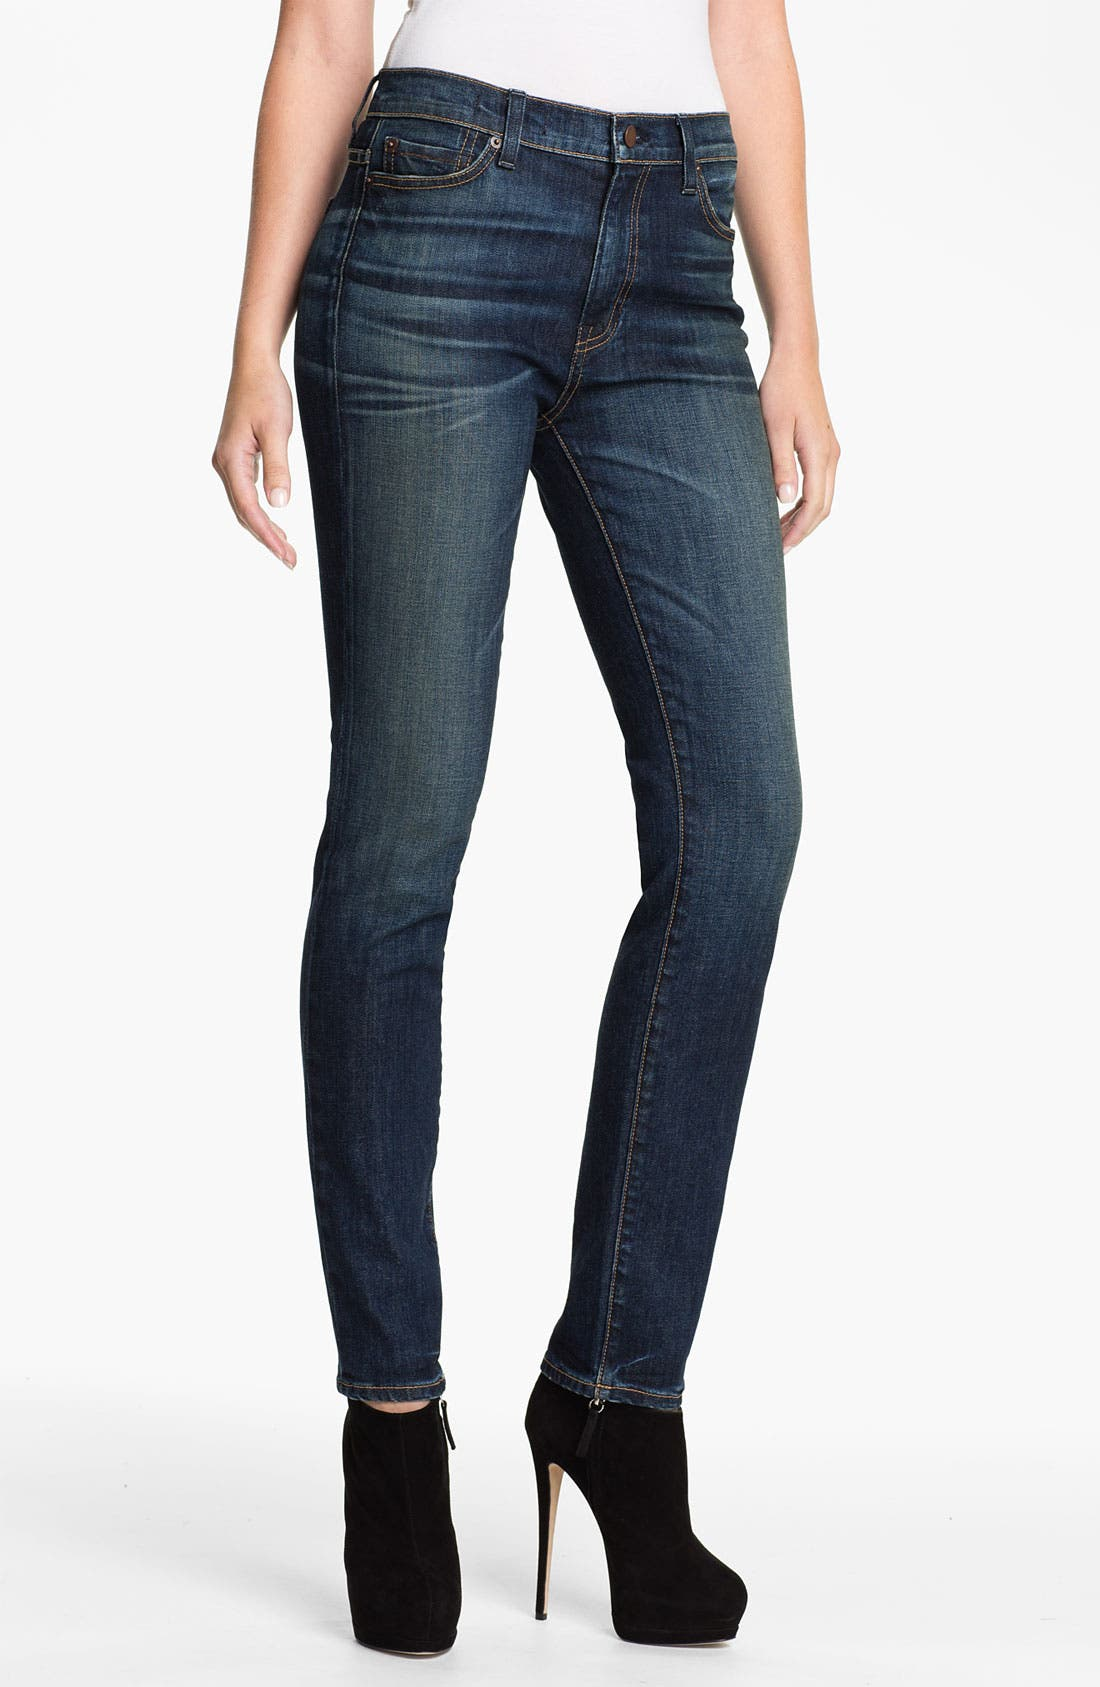 Main Image - TEXTILE Elizabeth and James 'Cyndi' High Rise Skinny Jeans